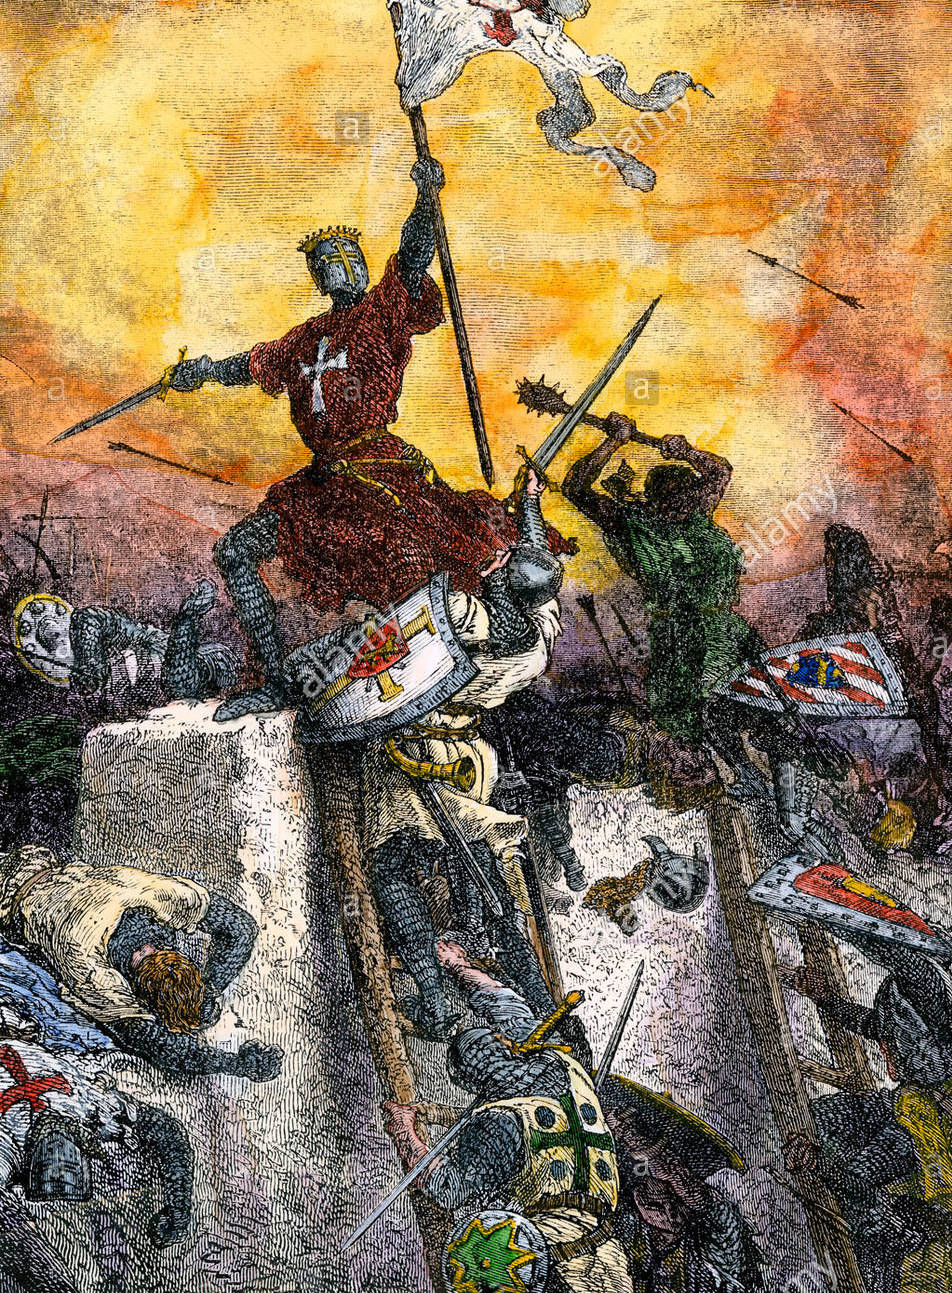 conquest-of-constantinople-during-the-fourth-crusade-1204-hand-colored-DC9CHN